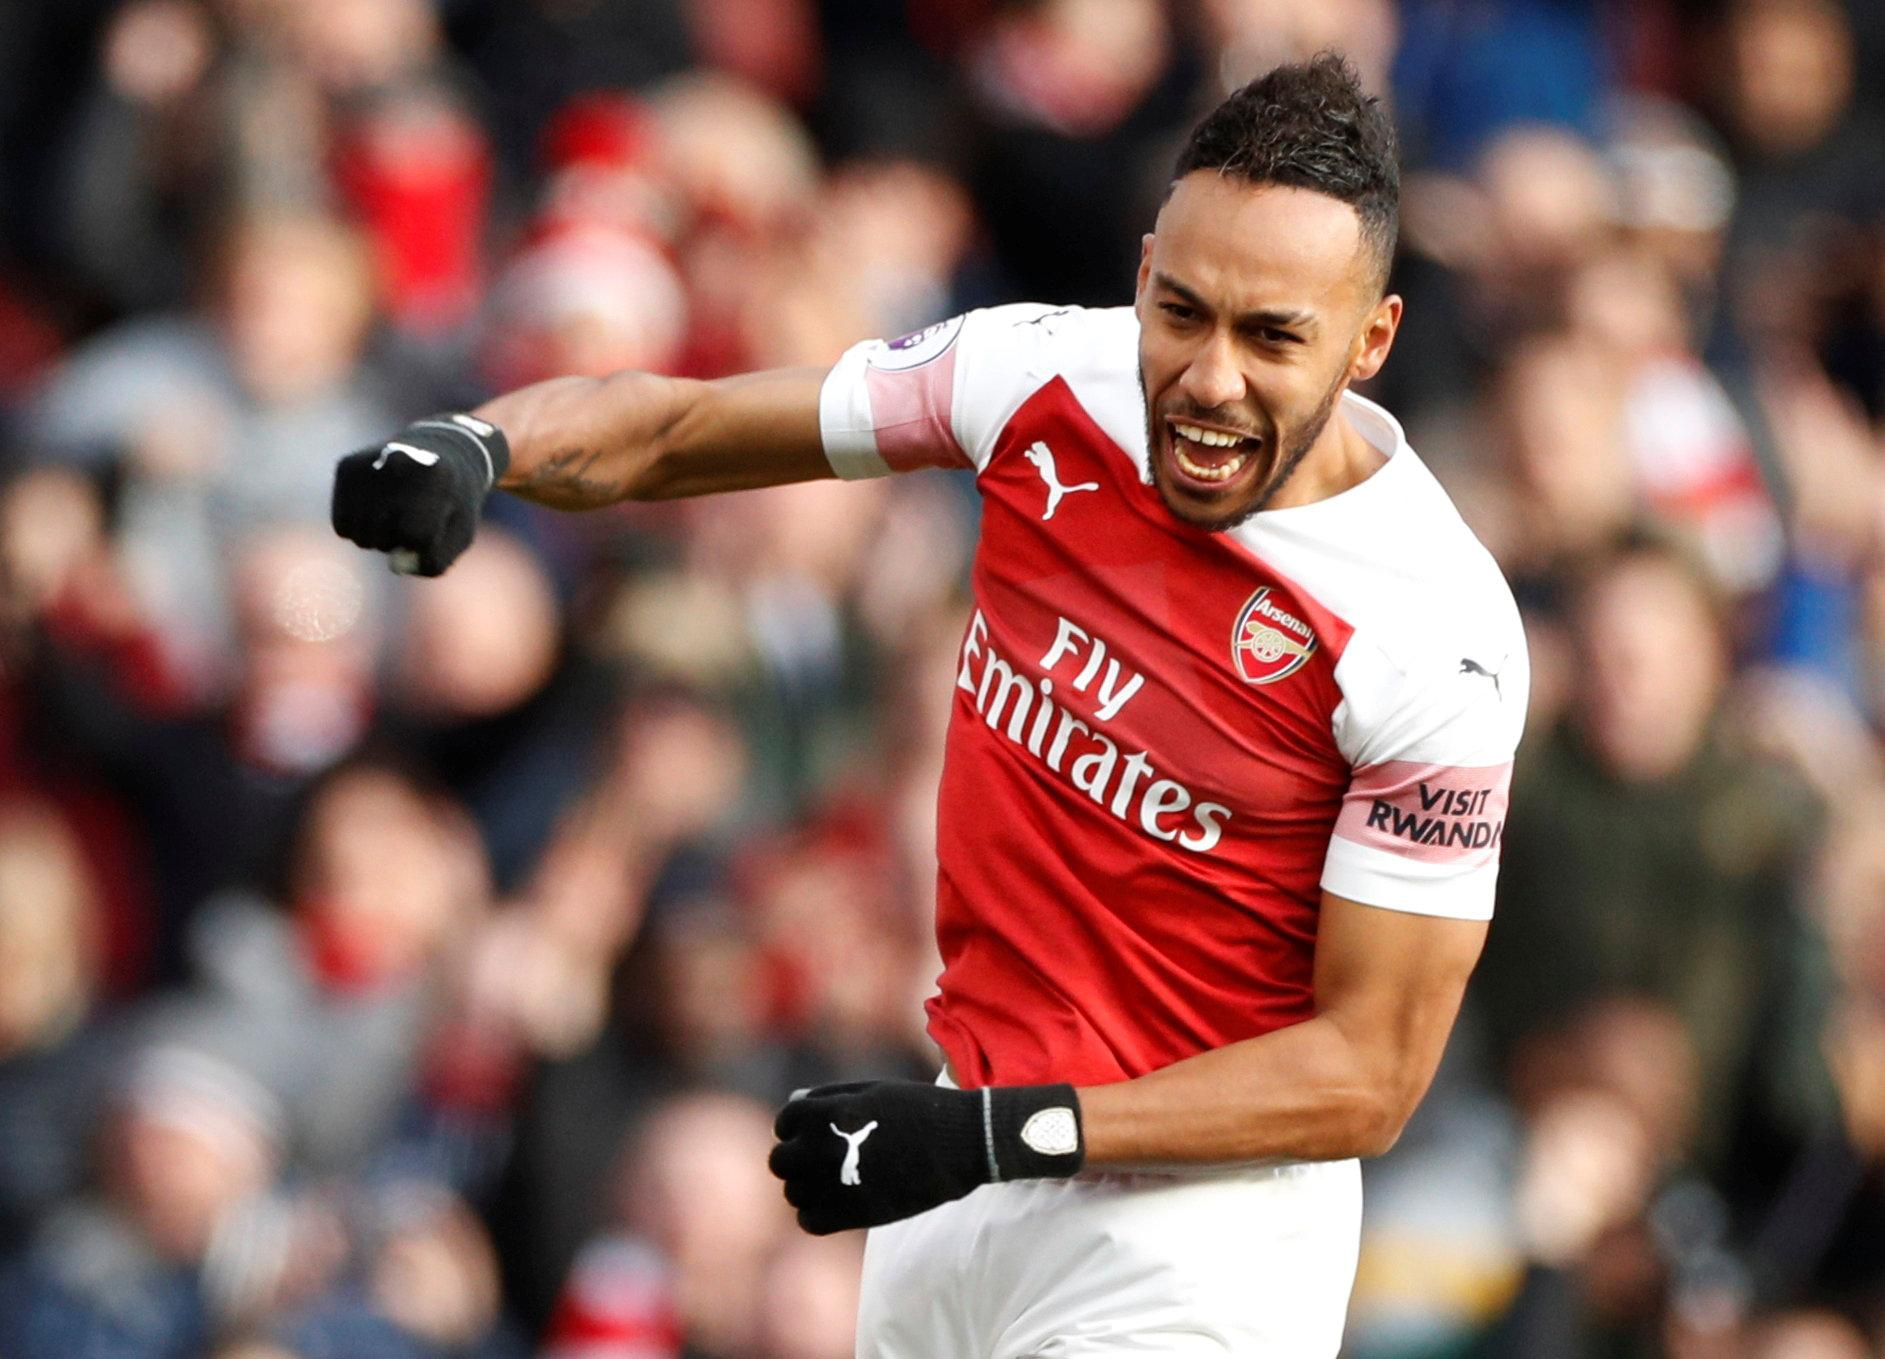 The striker is Arsenal's top goalscorer this season